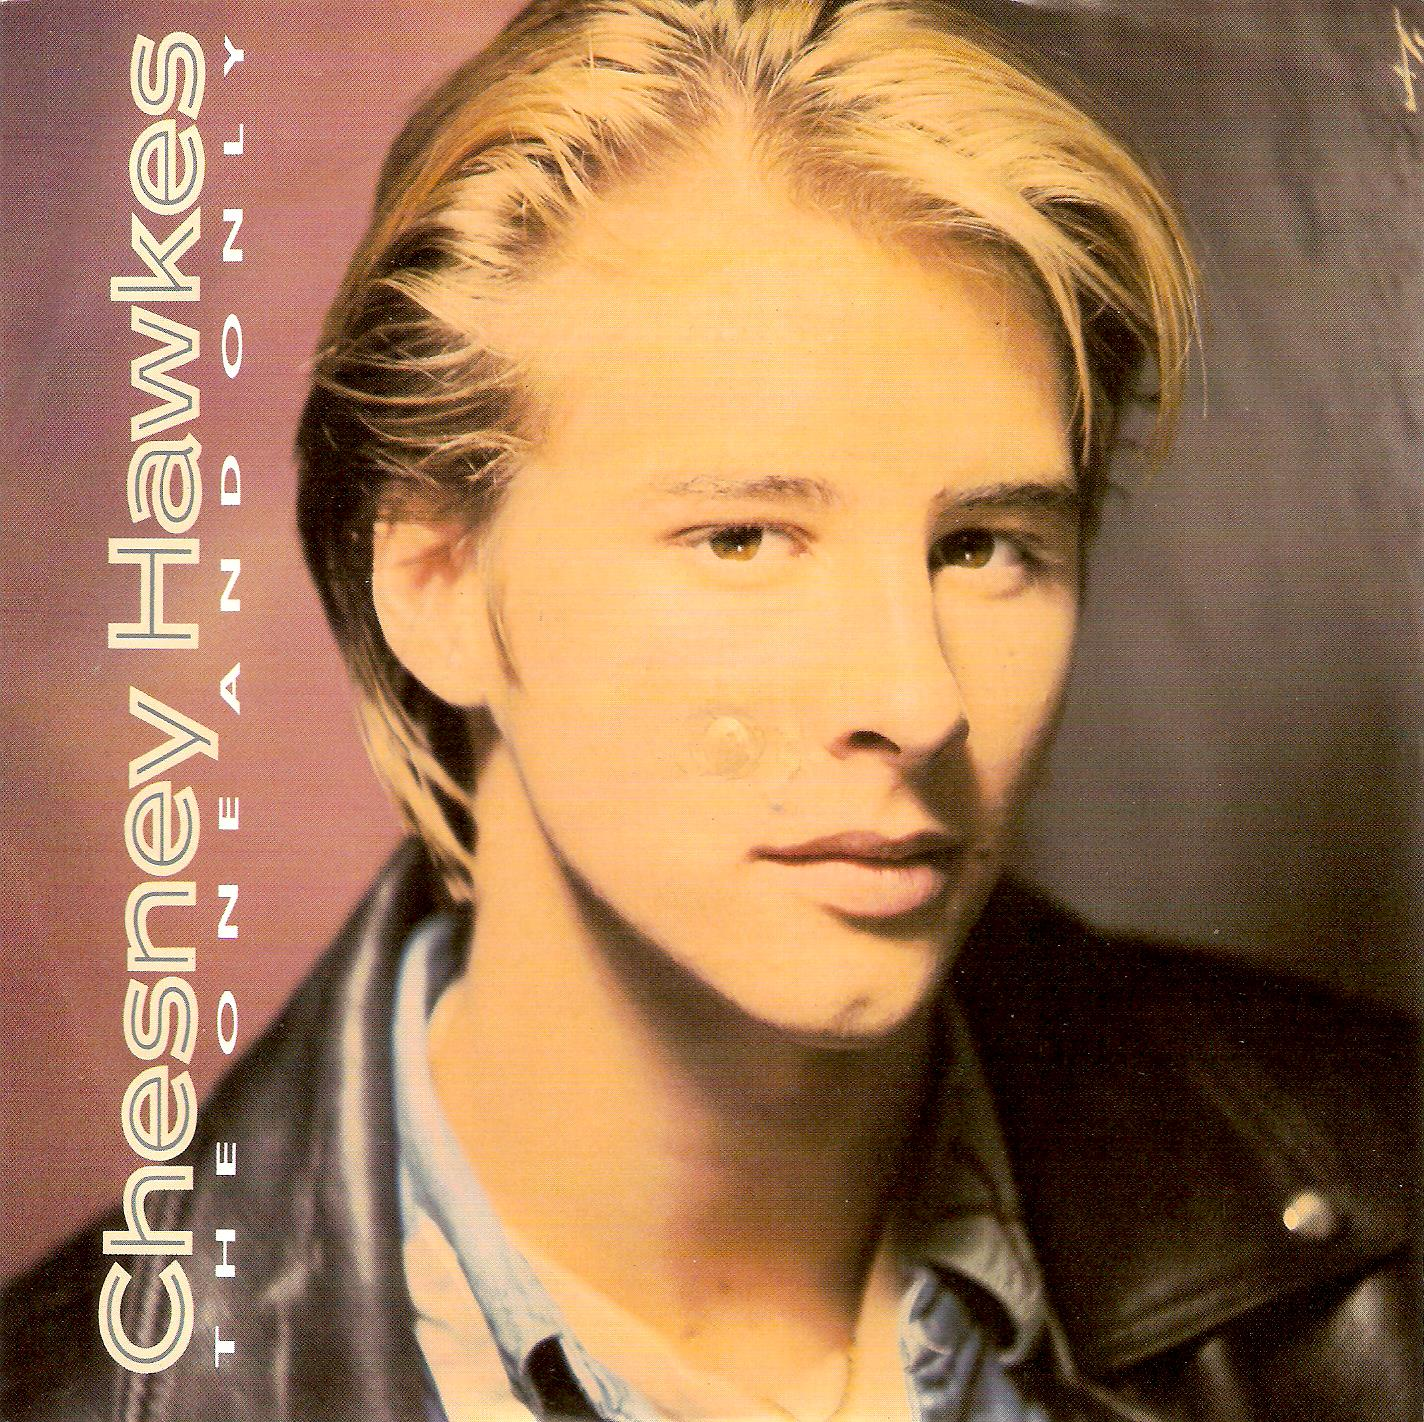 CHESNEY HAWKES The One And Only Vinyl Record 7 Inch Chrysalis 1991